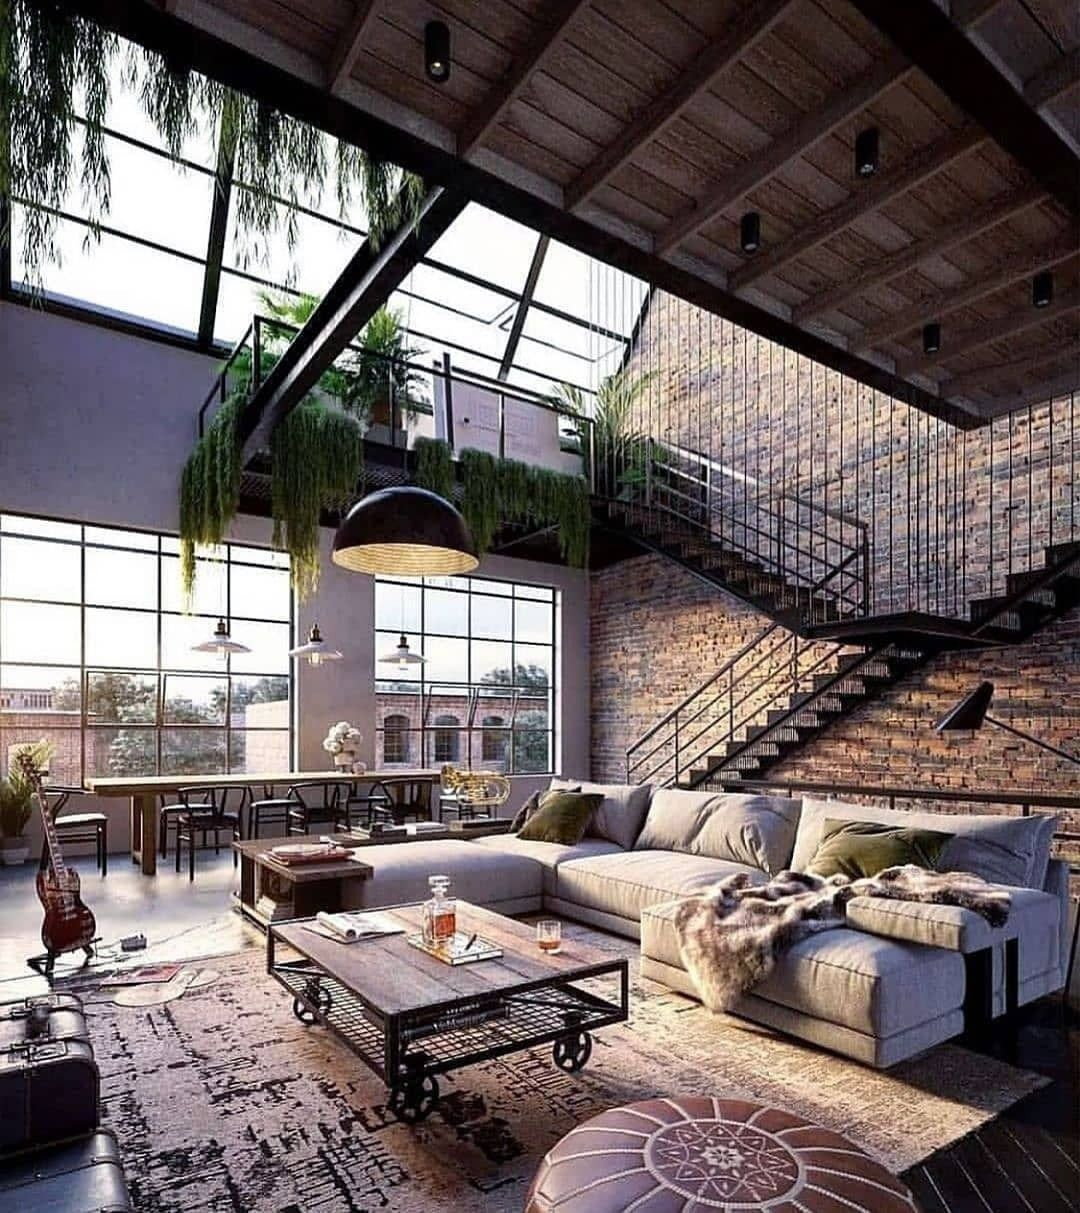 Open Concept Home Melbourne Australia What Do You Think Of This